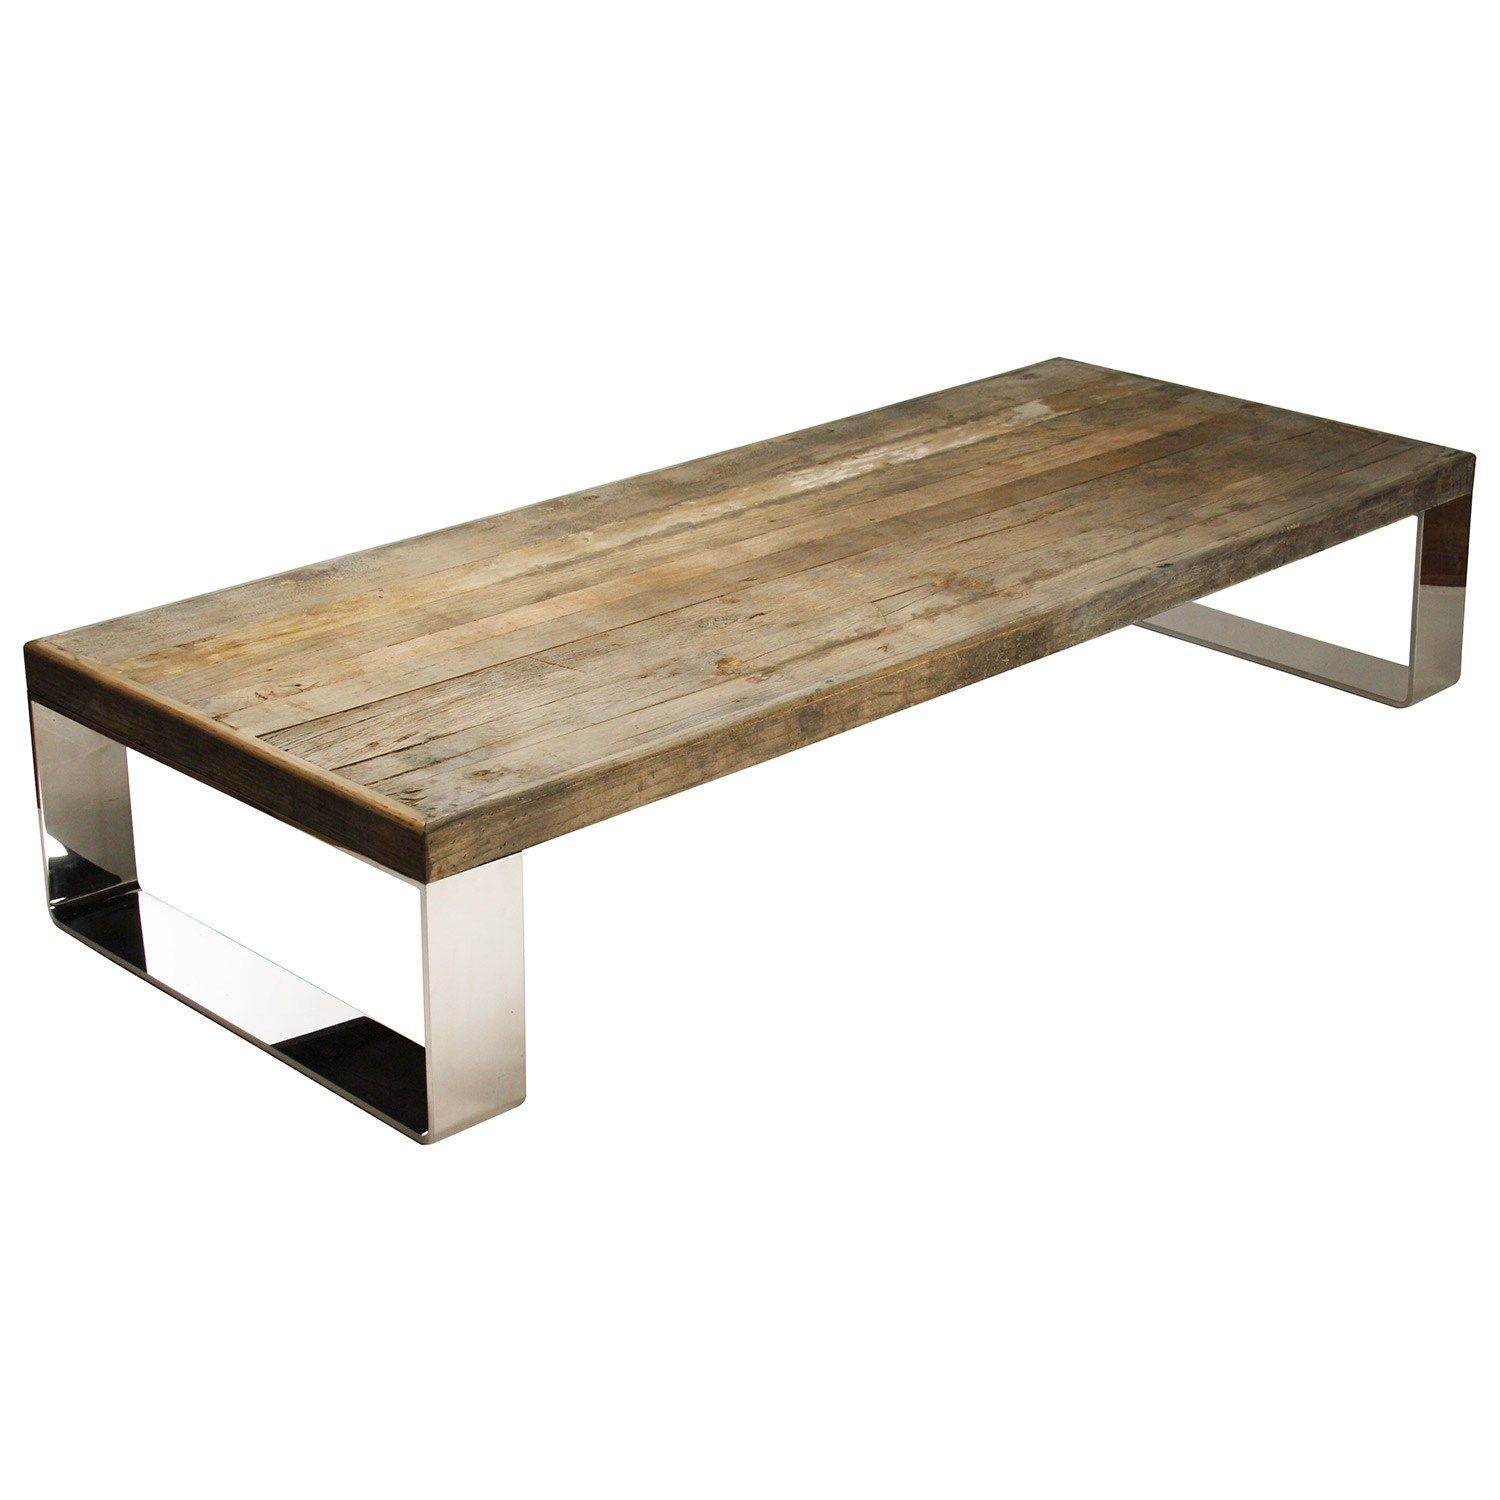 """$3439    view all items from zentique  Fuse modern design and simple rustic charm with the weathered Darren coffee table from Zentique. Contemporary stainless steel legs contrast with the rectangular table's reclaimed wood for natural texture and an understated living room look.  71""""W x 29.5""""D x 14""""H"""